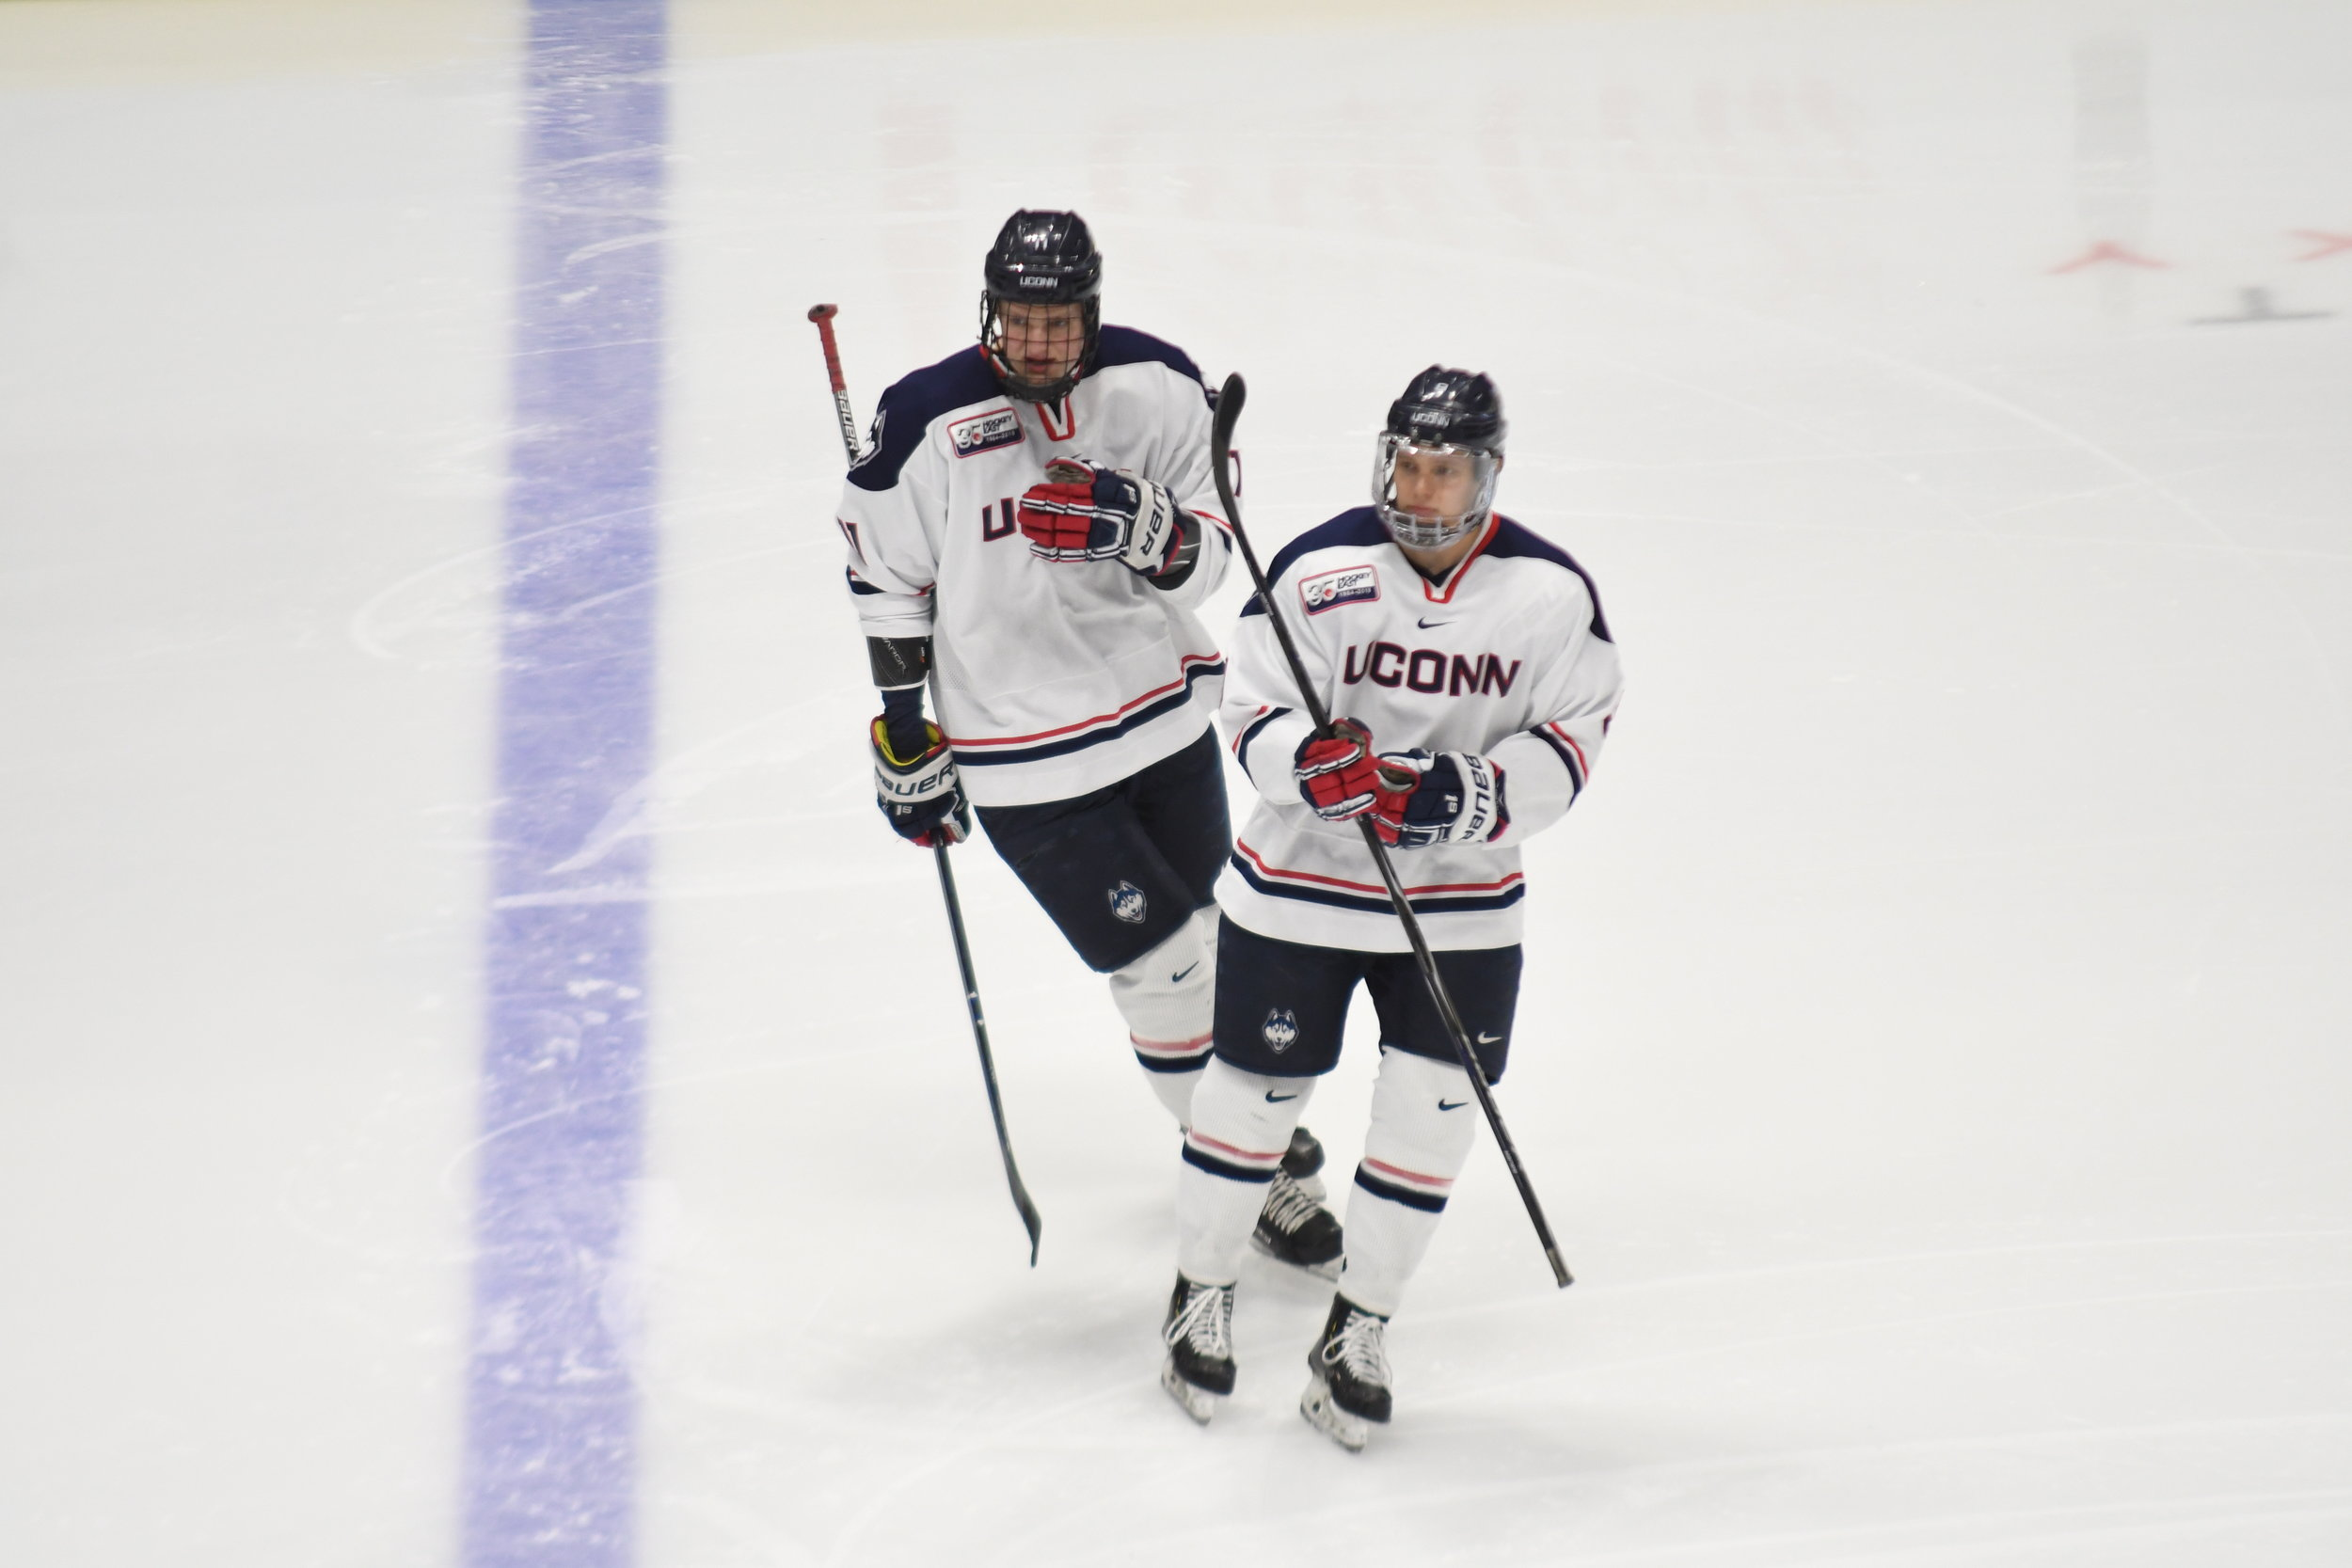 The Huskies lost 3-4 against the BC Eagles after a making a comeback from 1-4 in the 3rd period. Their next home game at the XL center is on 2/7 against Northeastern. (File Photo/The Daily Campus)